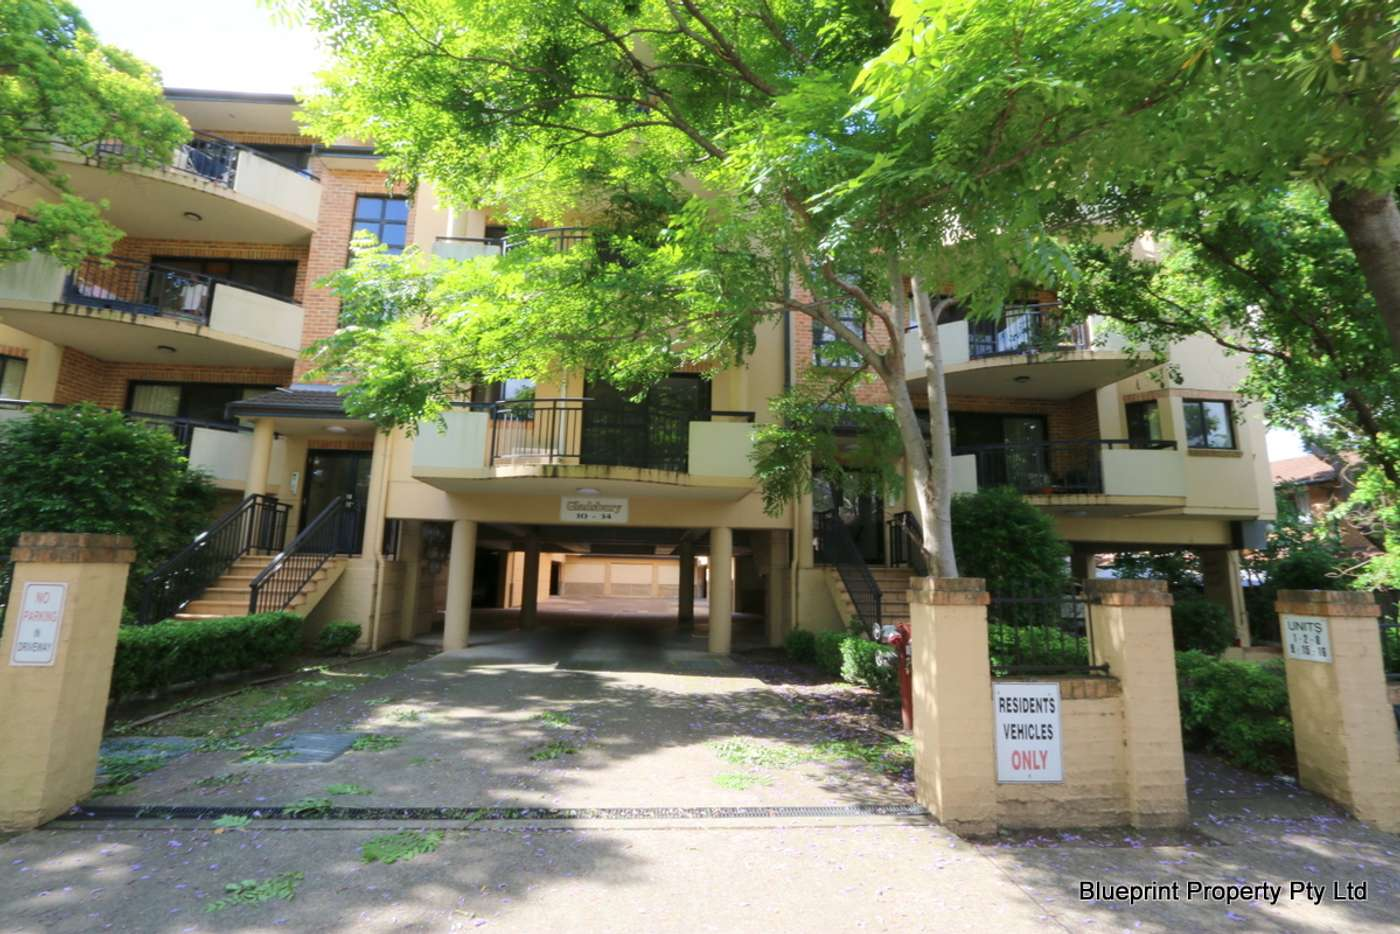 Main view of Homely apartment listing, 1/10-14 Gladstone Street, North Parramatta NSW 2151